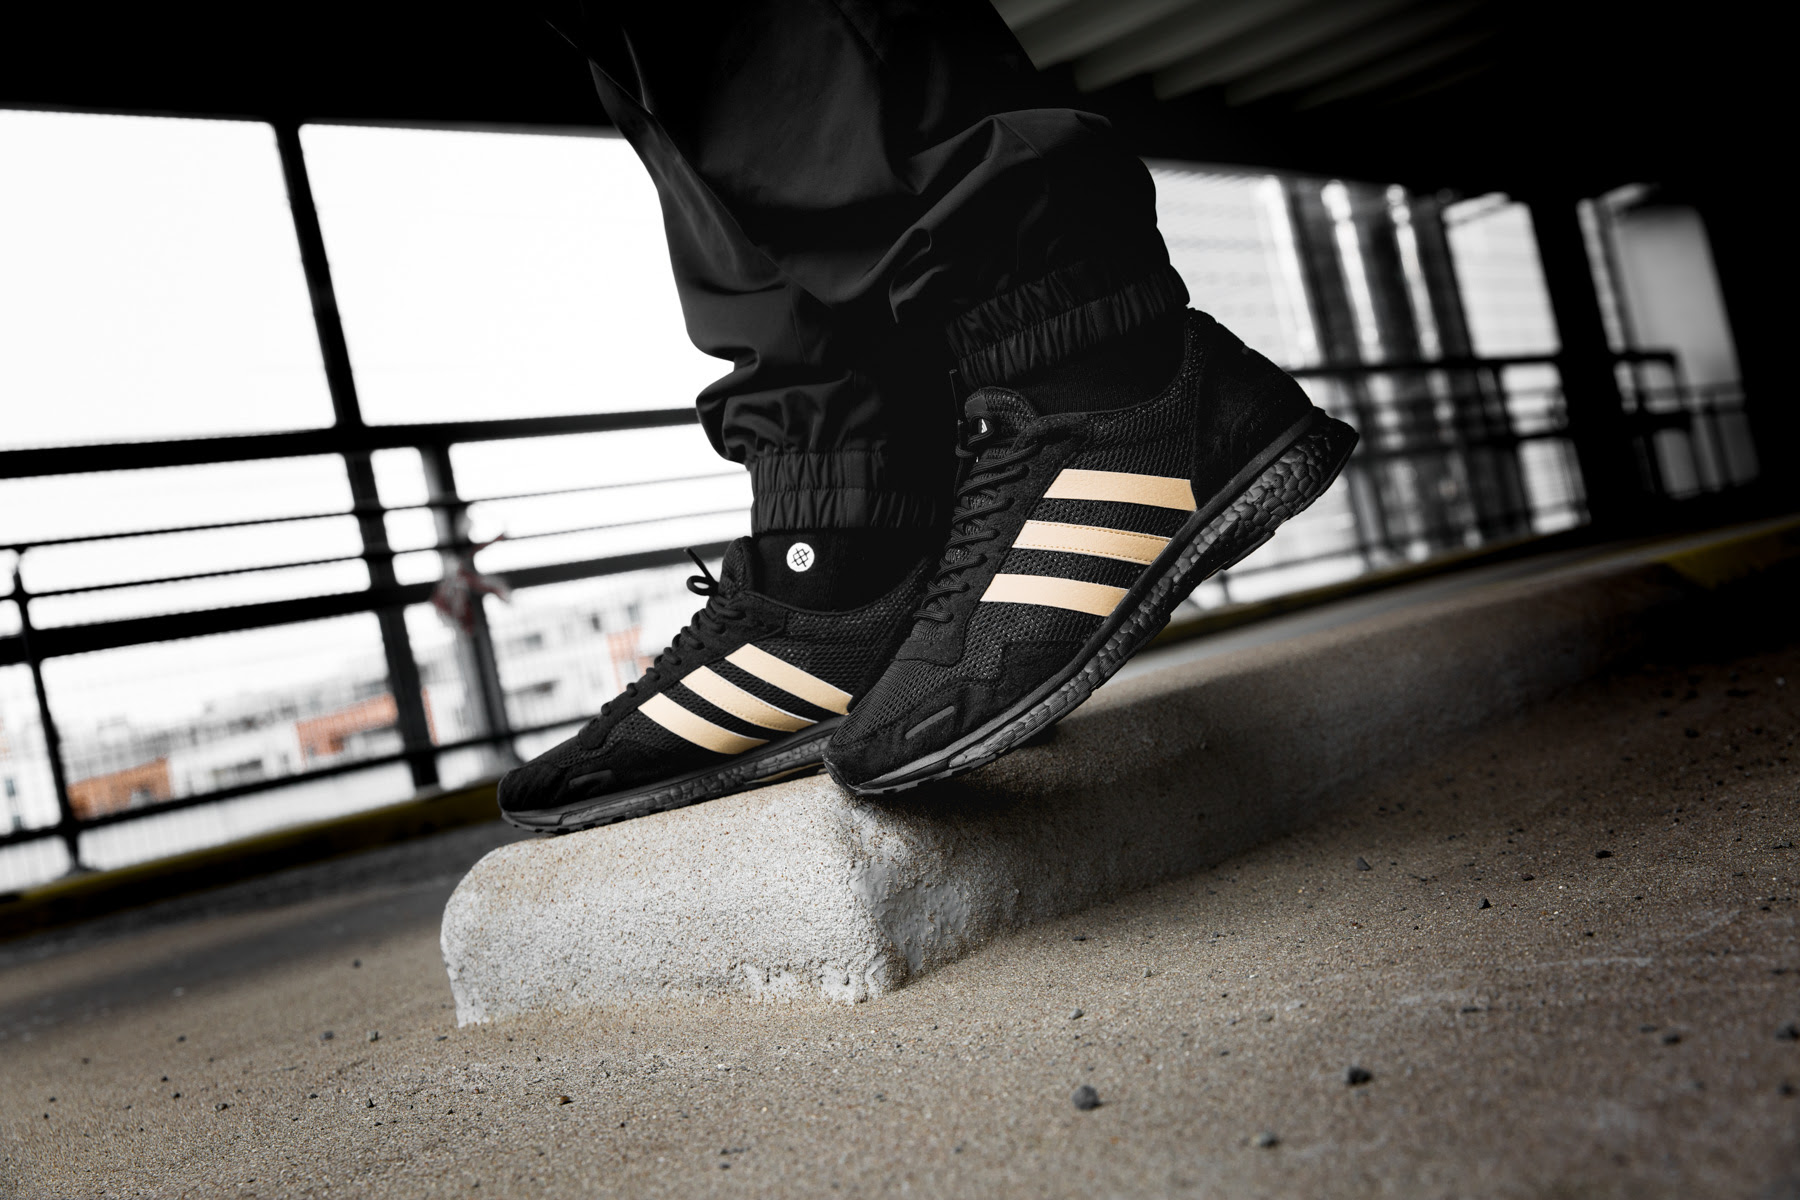 49503bc4c291 Take a Closer Look at the adidas x Undefeated Boost Pack with ...